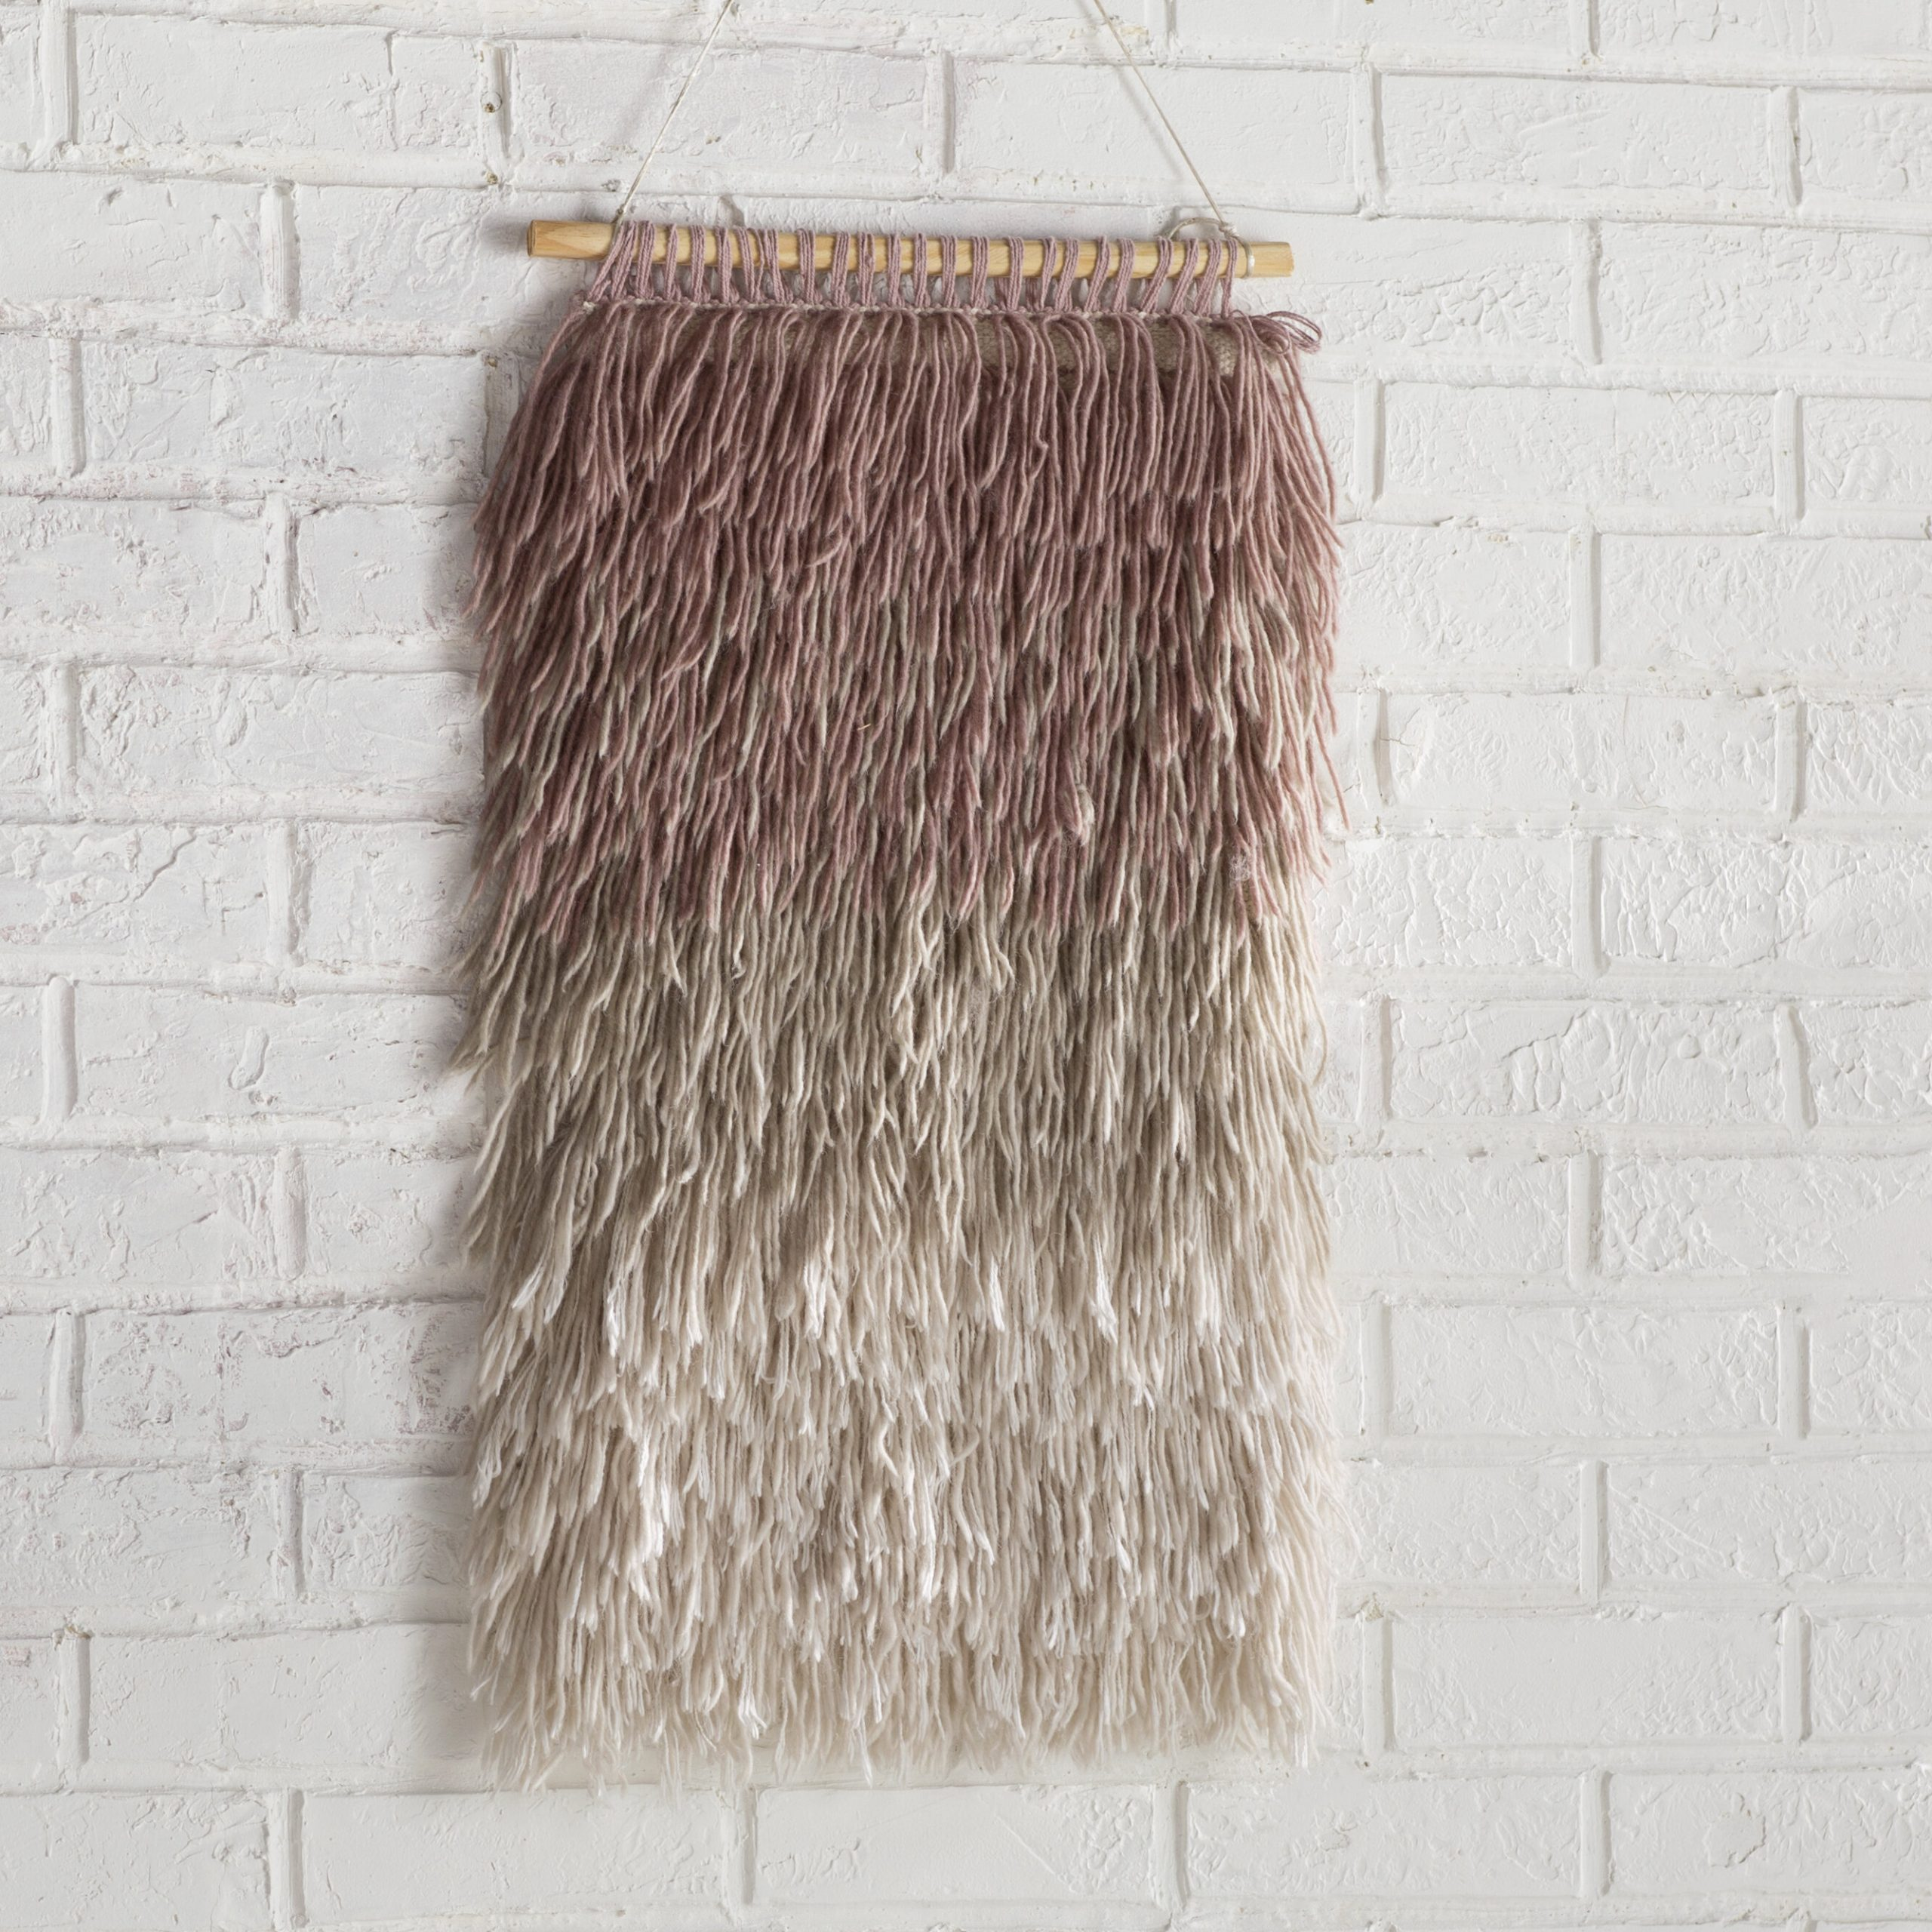 Destrie Wall Hanging With Rod Included For Most Up To Date Blended Fabric Wall Hangings With Rod Included (View 11 of 20)